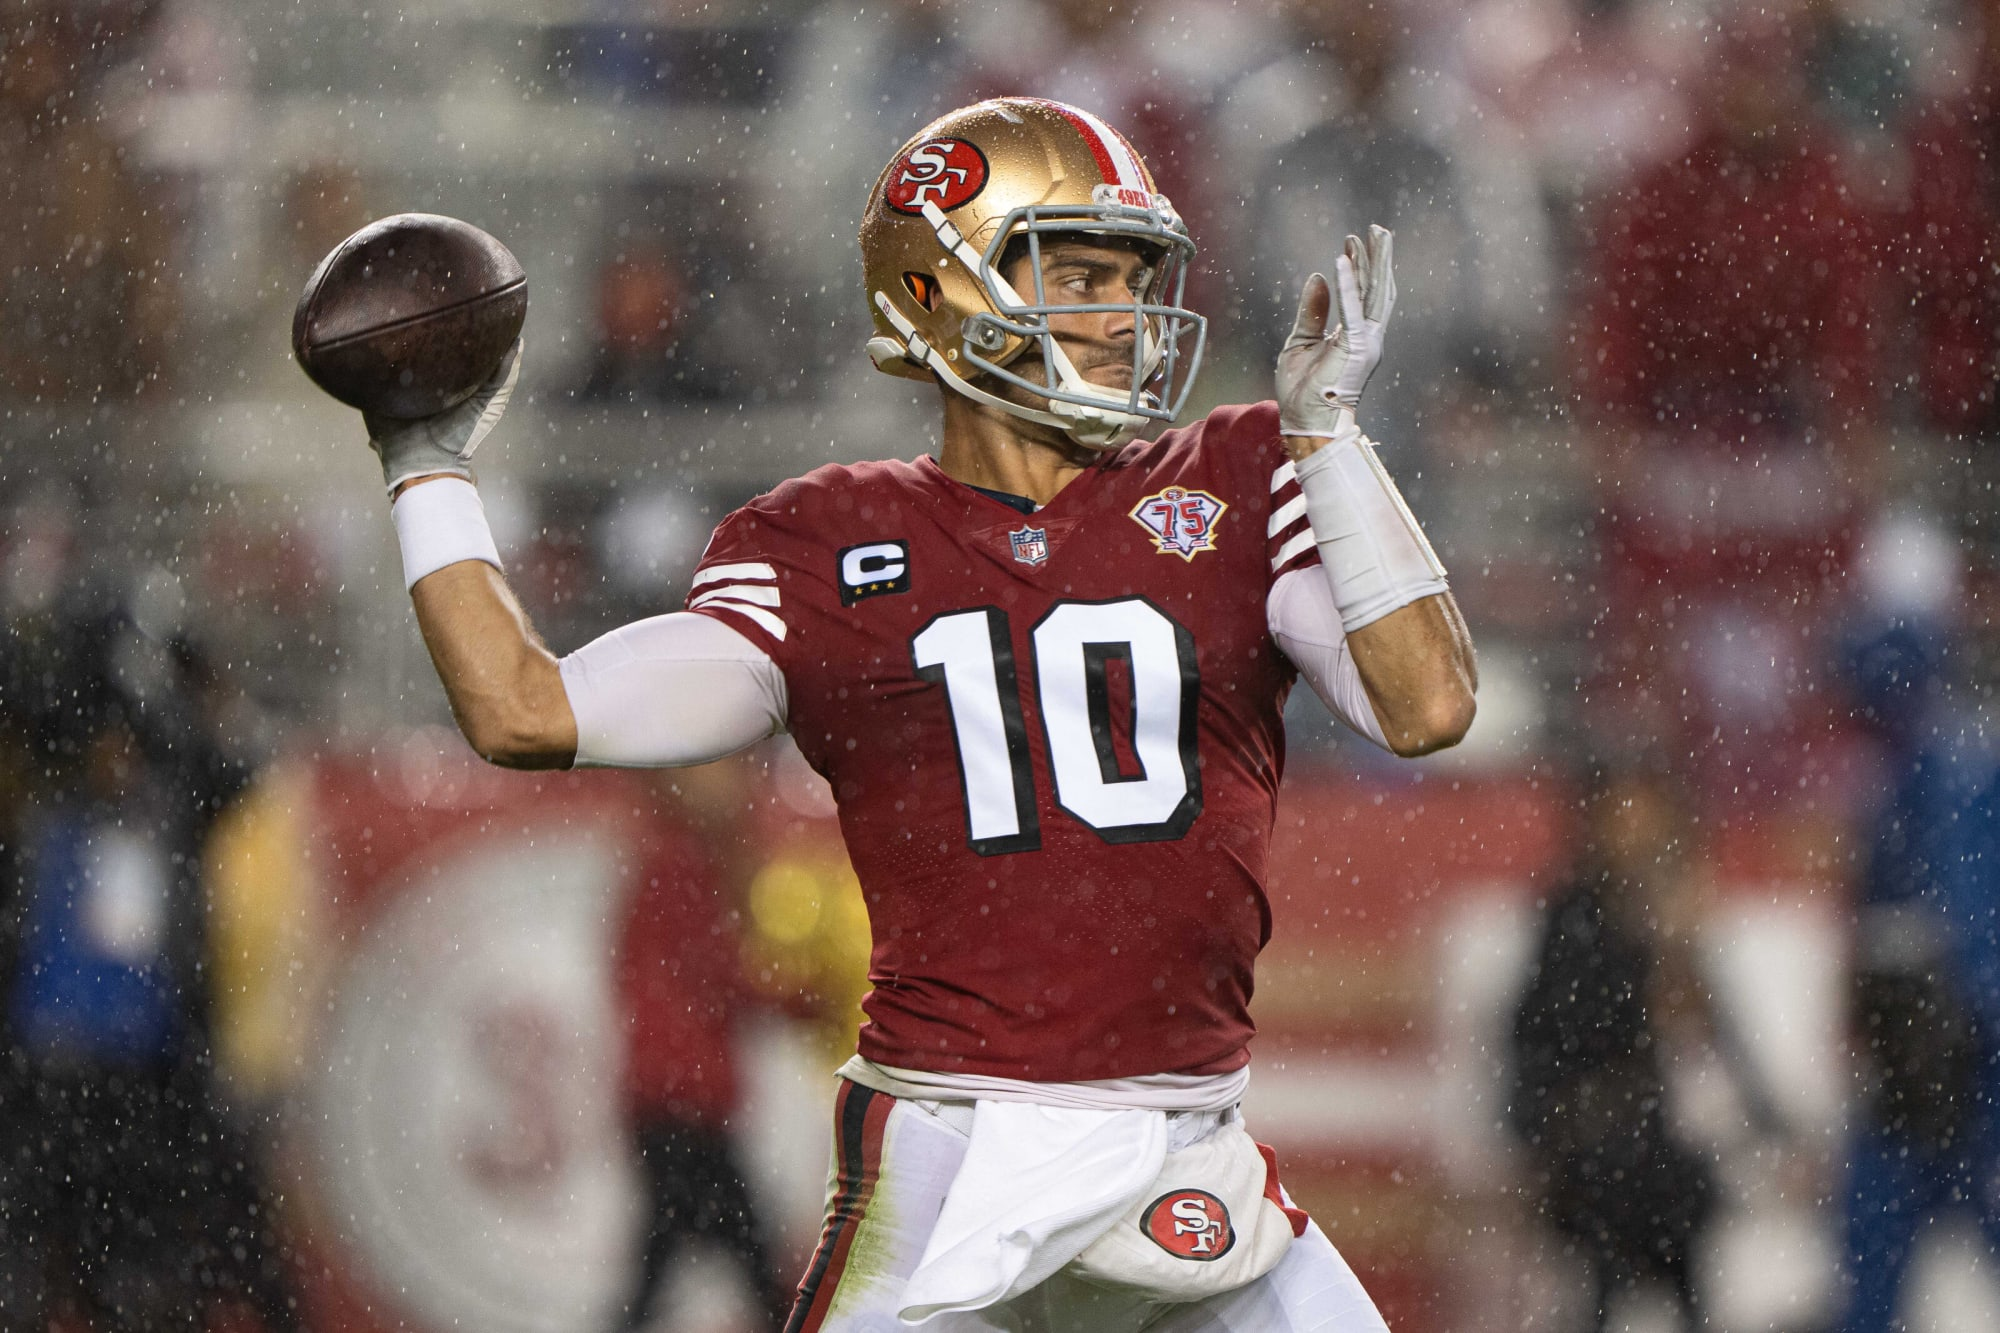 Kyle Shanahan is sticking with Jimmy Garoppolo as 49ers starting quarterback